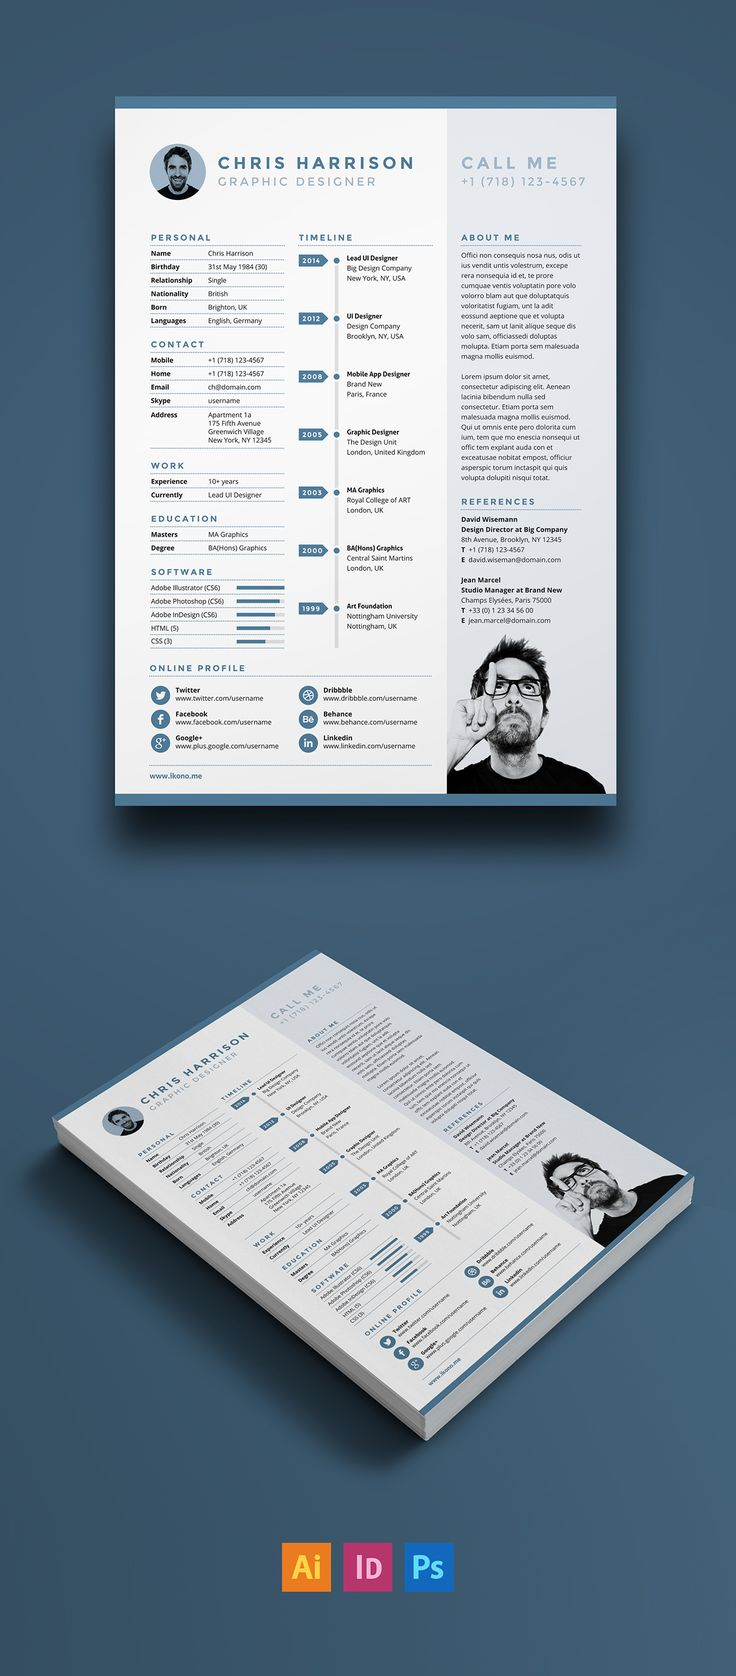 Berühmt 169 best CV Design images on Pinterest | Cv design, Creative  IC03